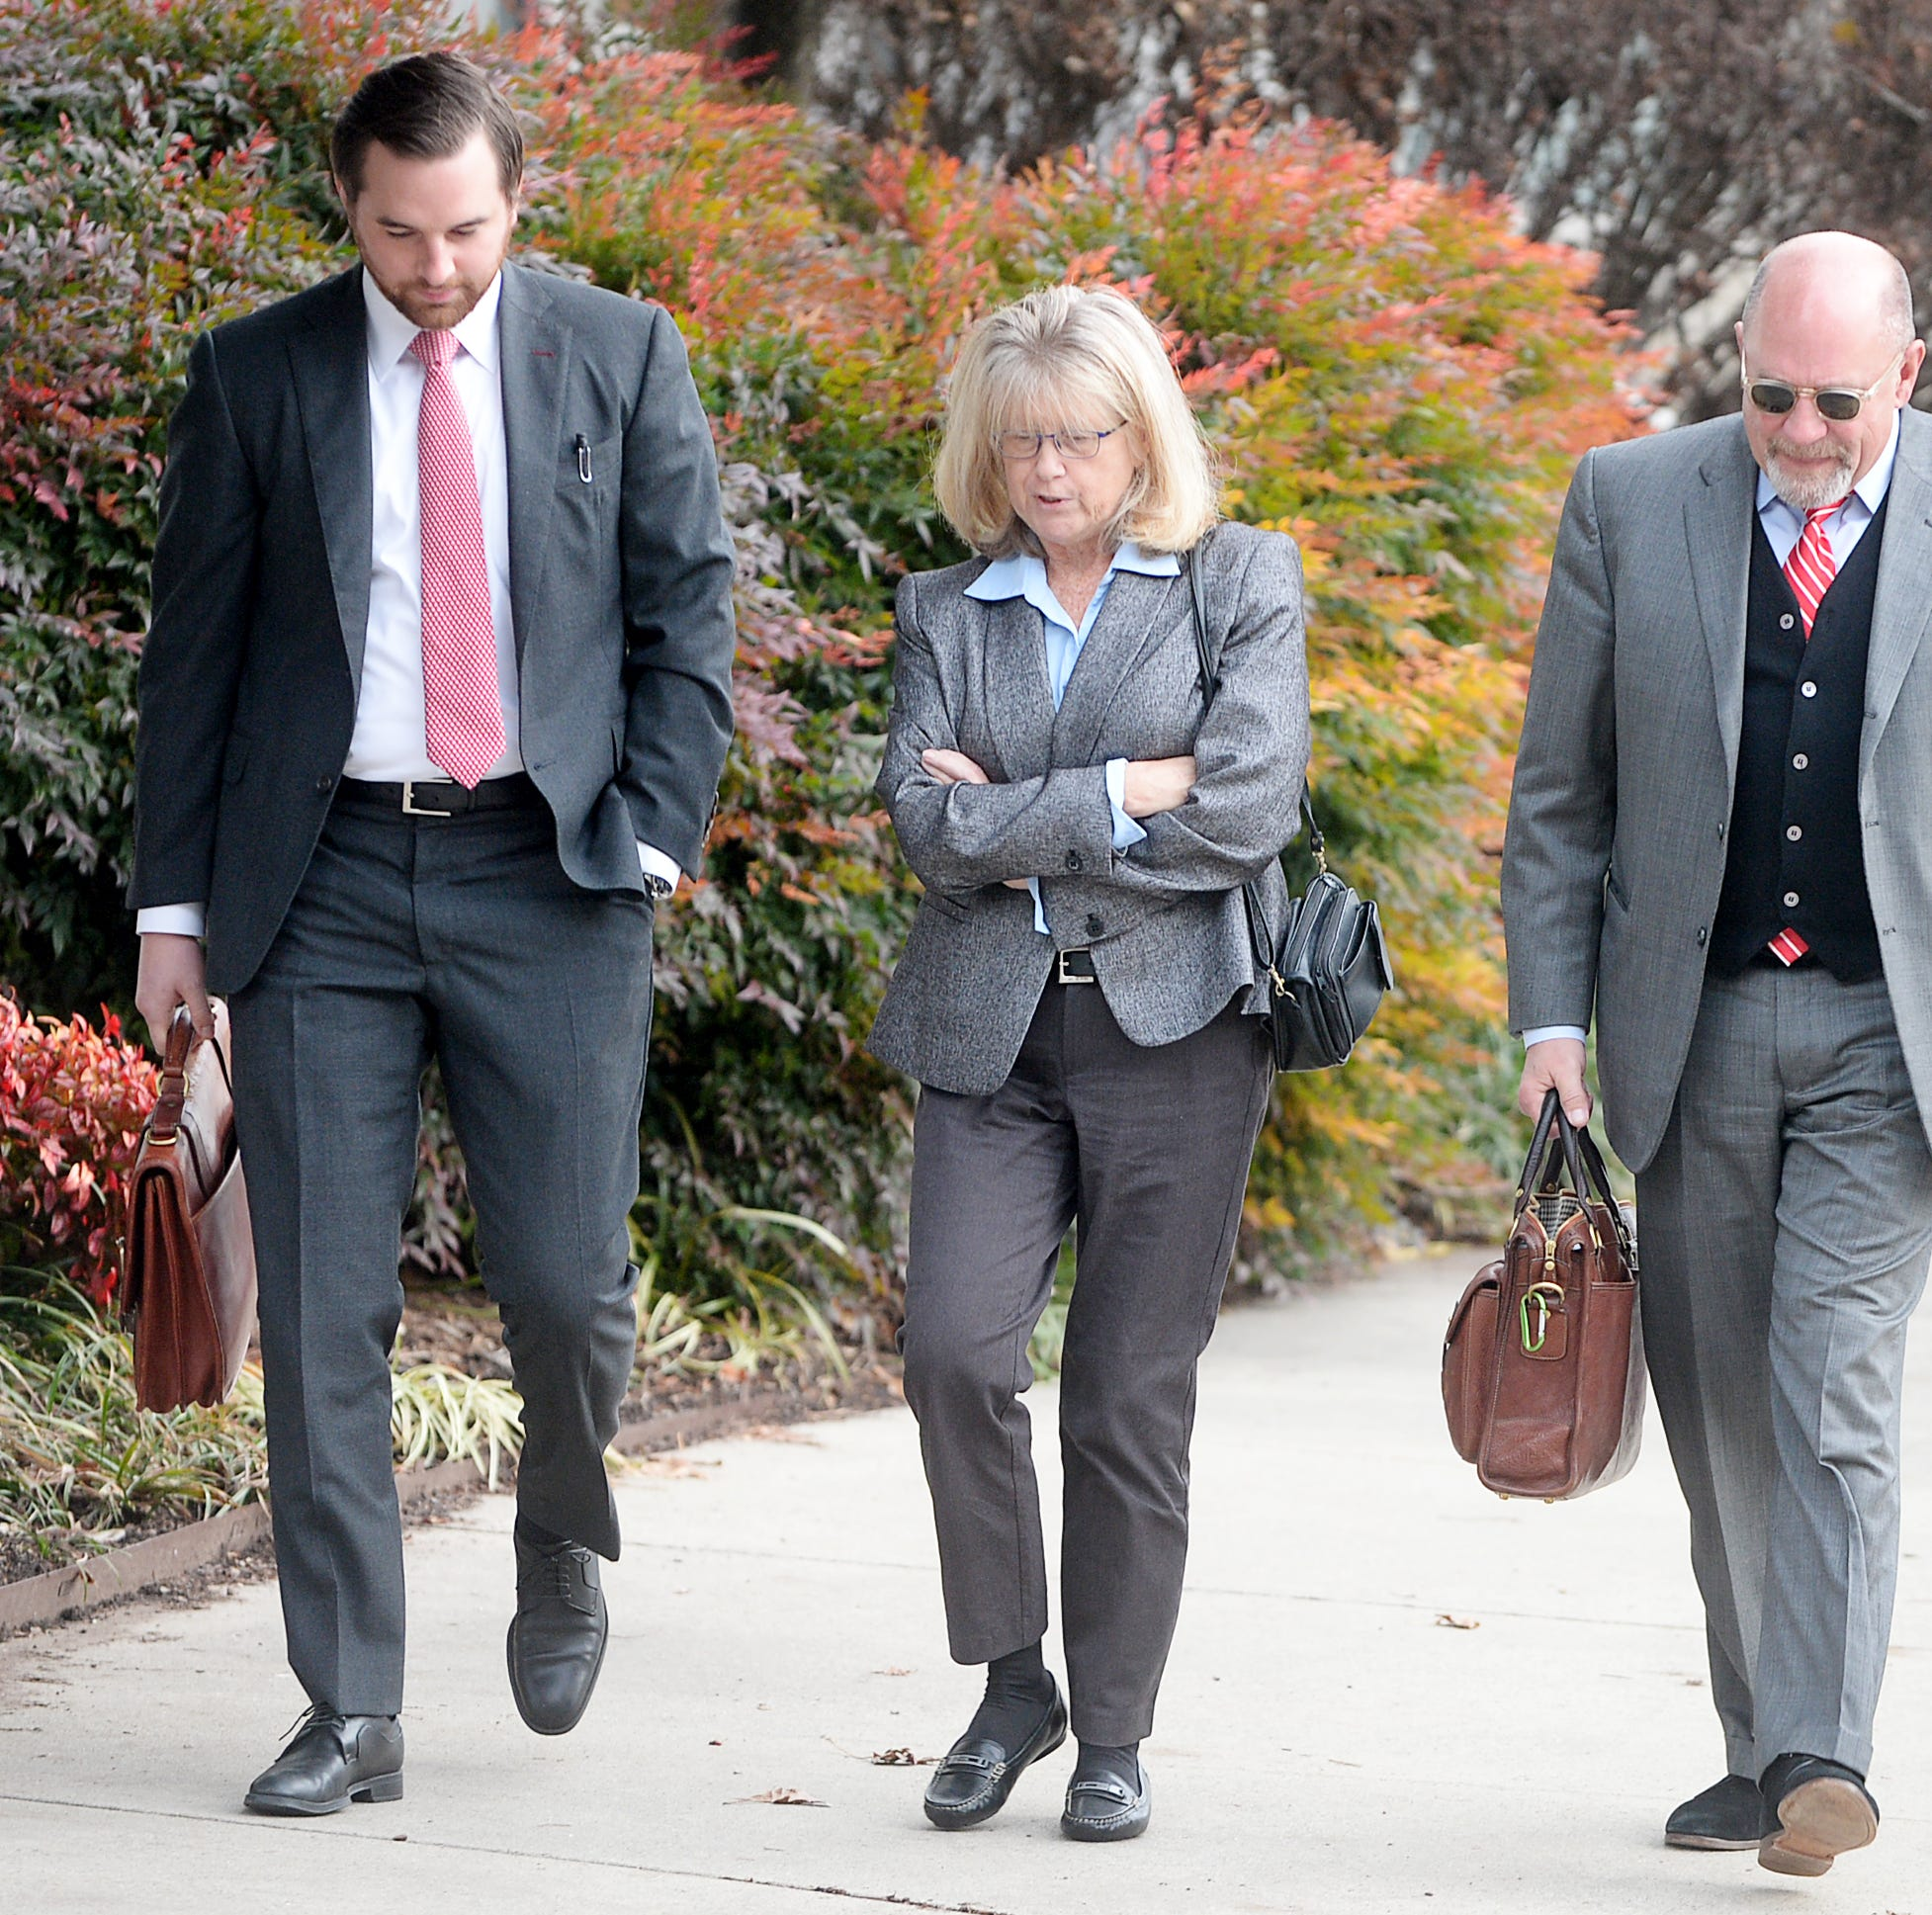 In Buncombe corruption investigation, 5 plead guilty. But 2 of them haven't paid up.